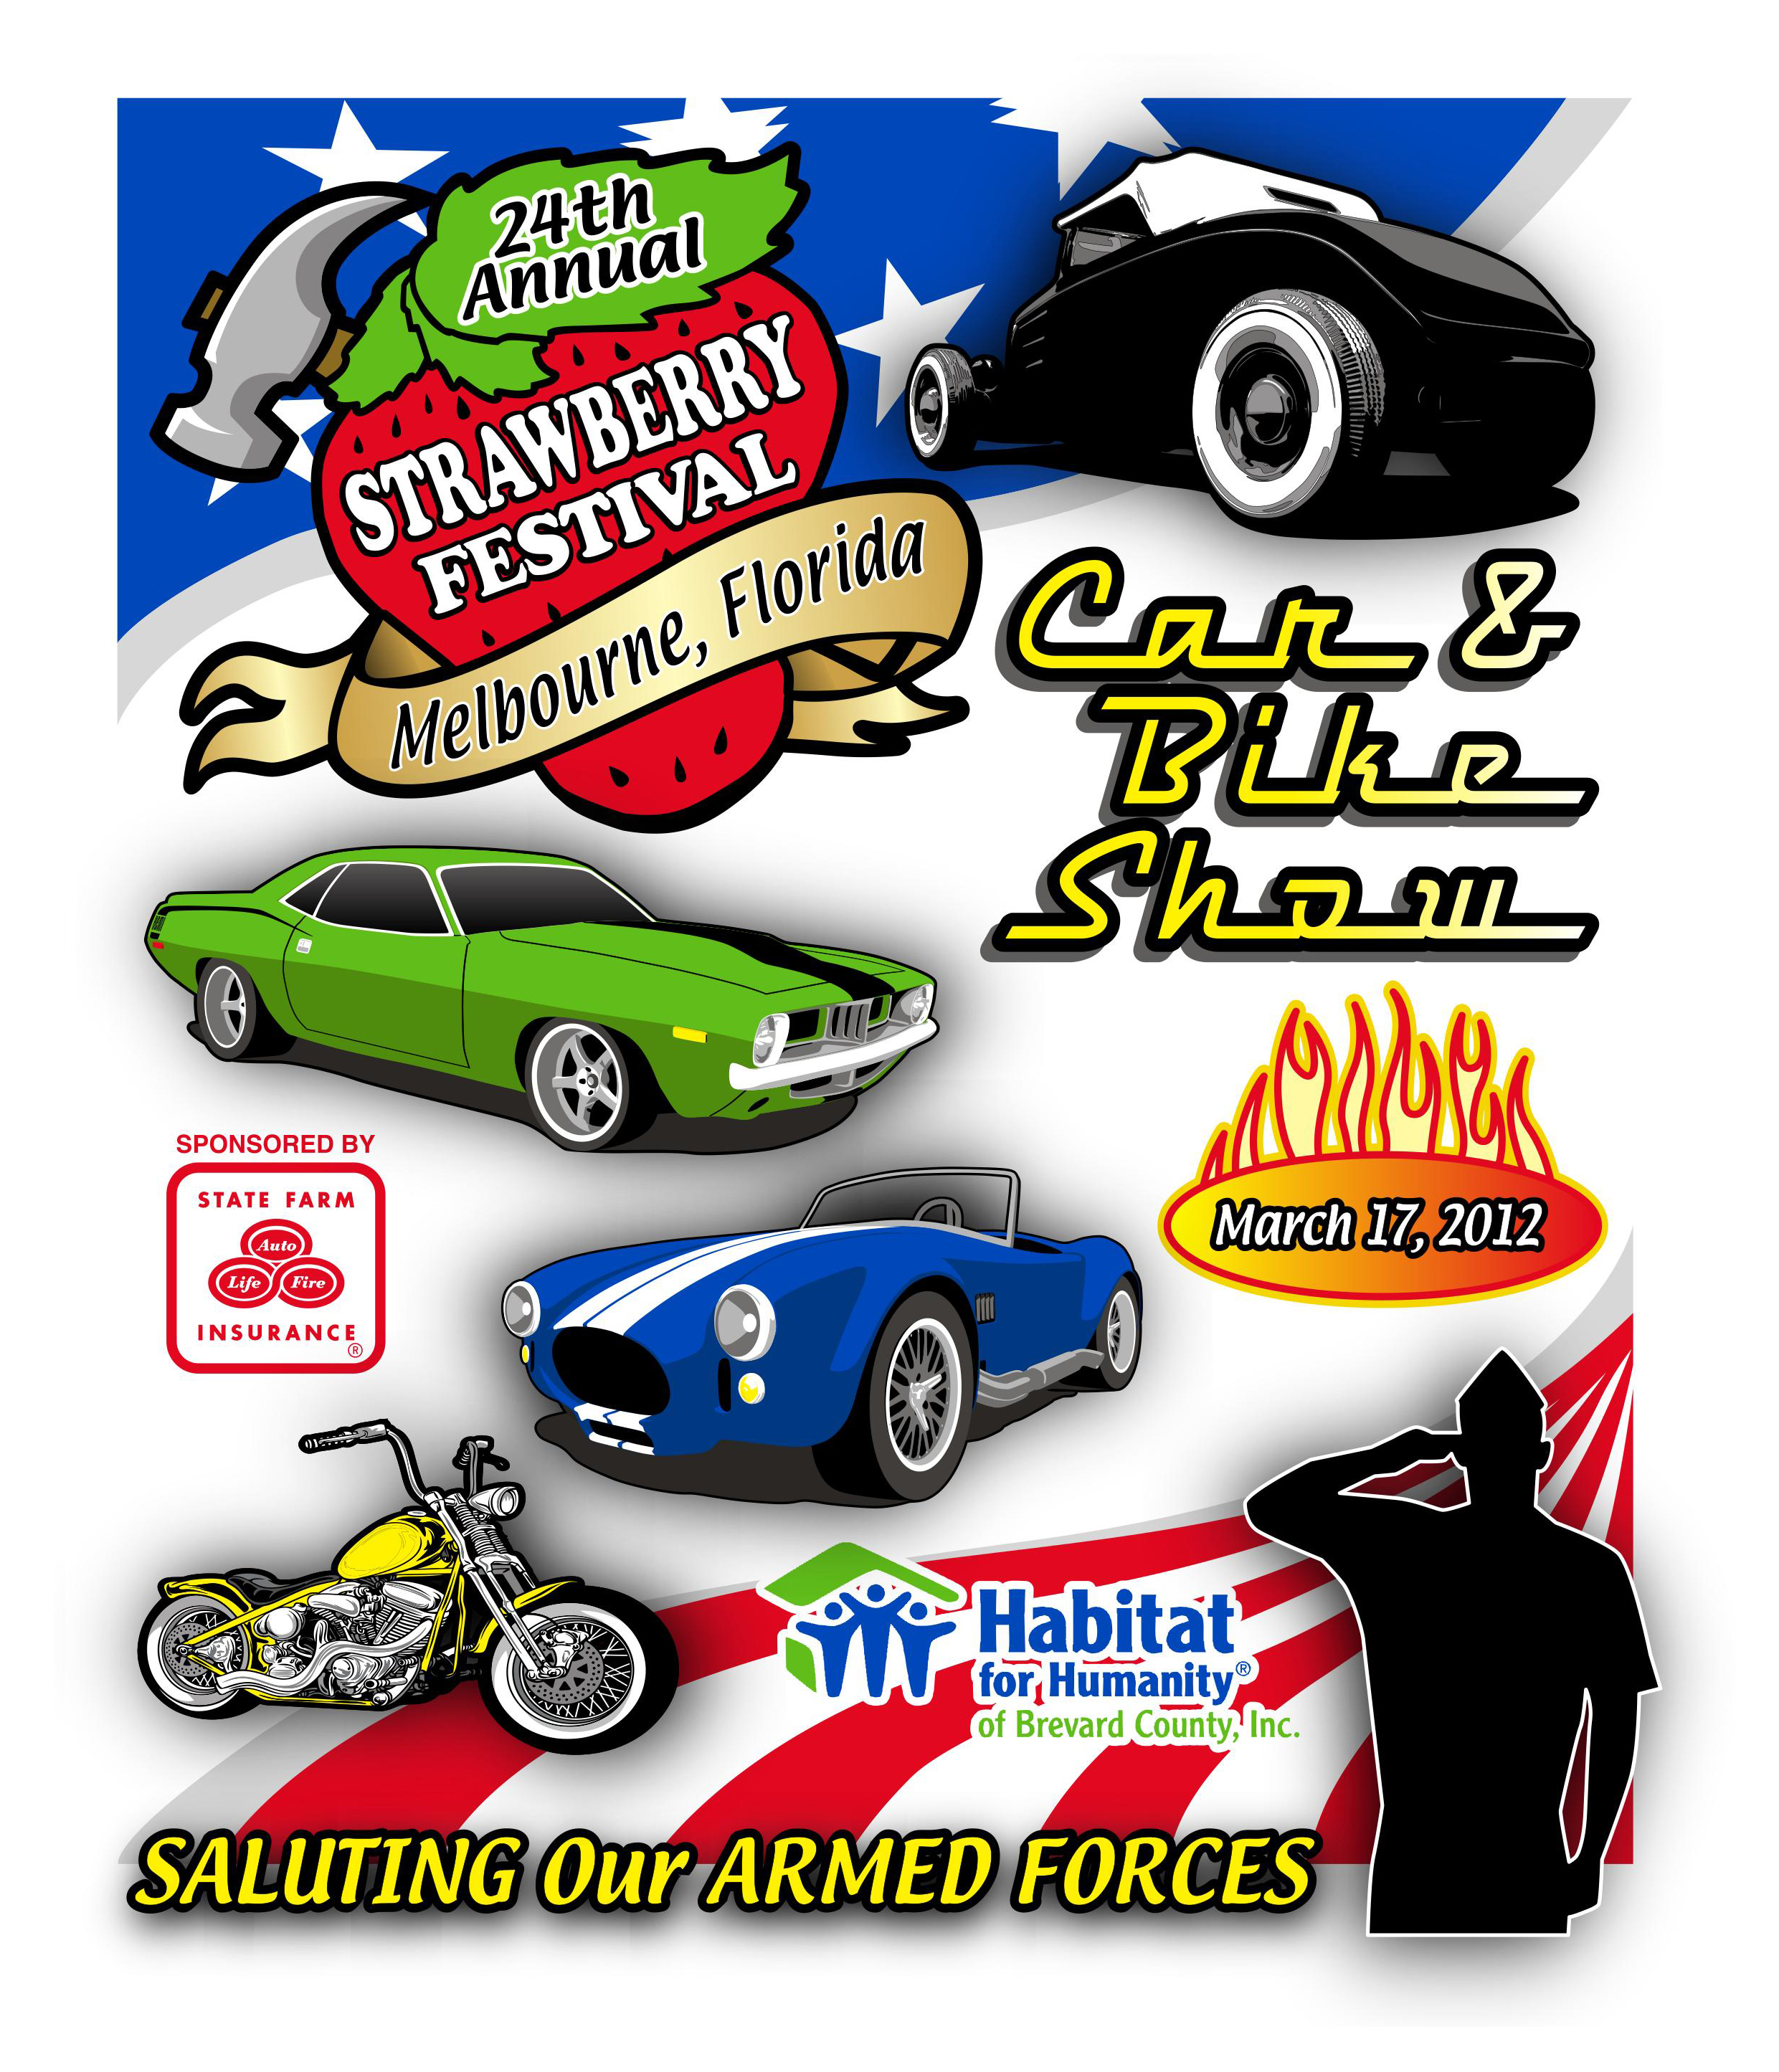 Strawberry Fest Car Show Tee By ArtLab Artlab - Wickham park car show melbourne fl